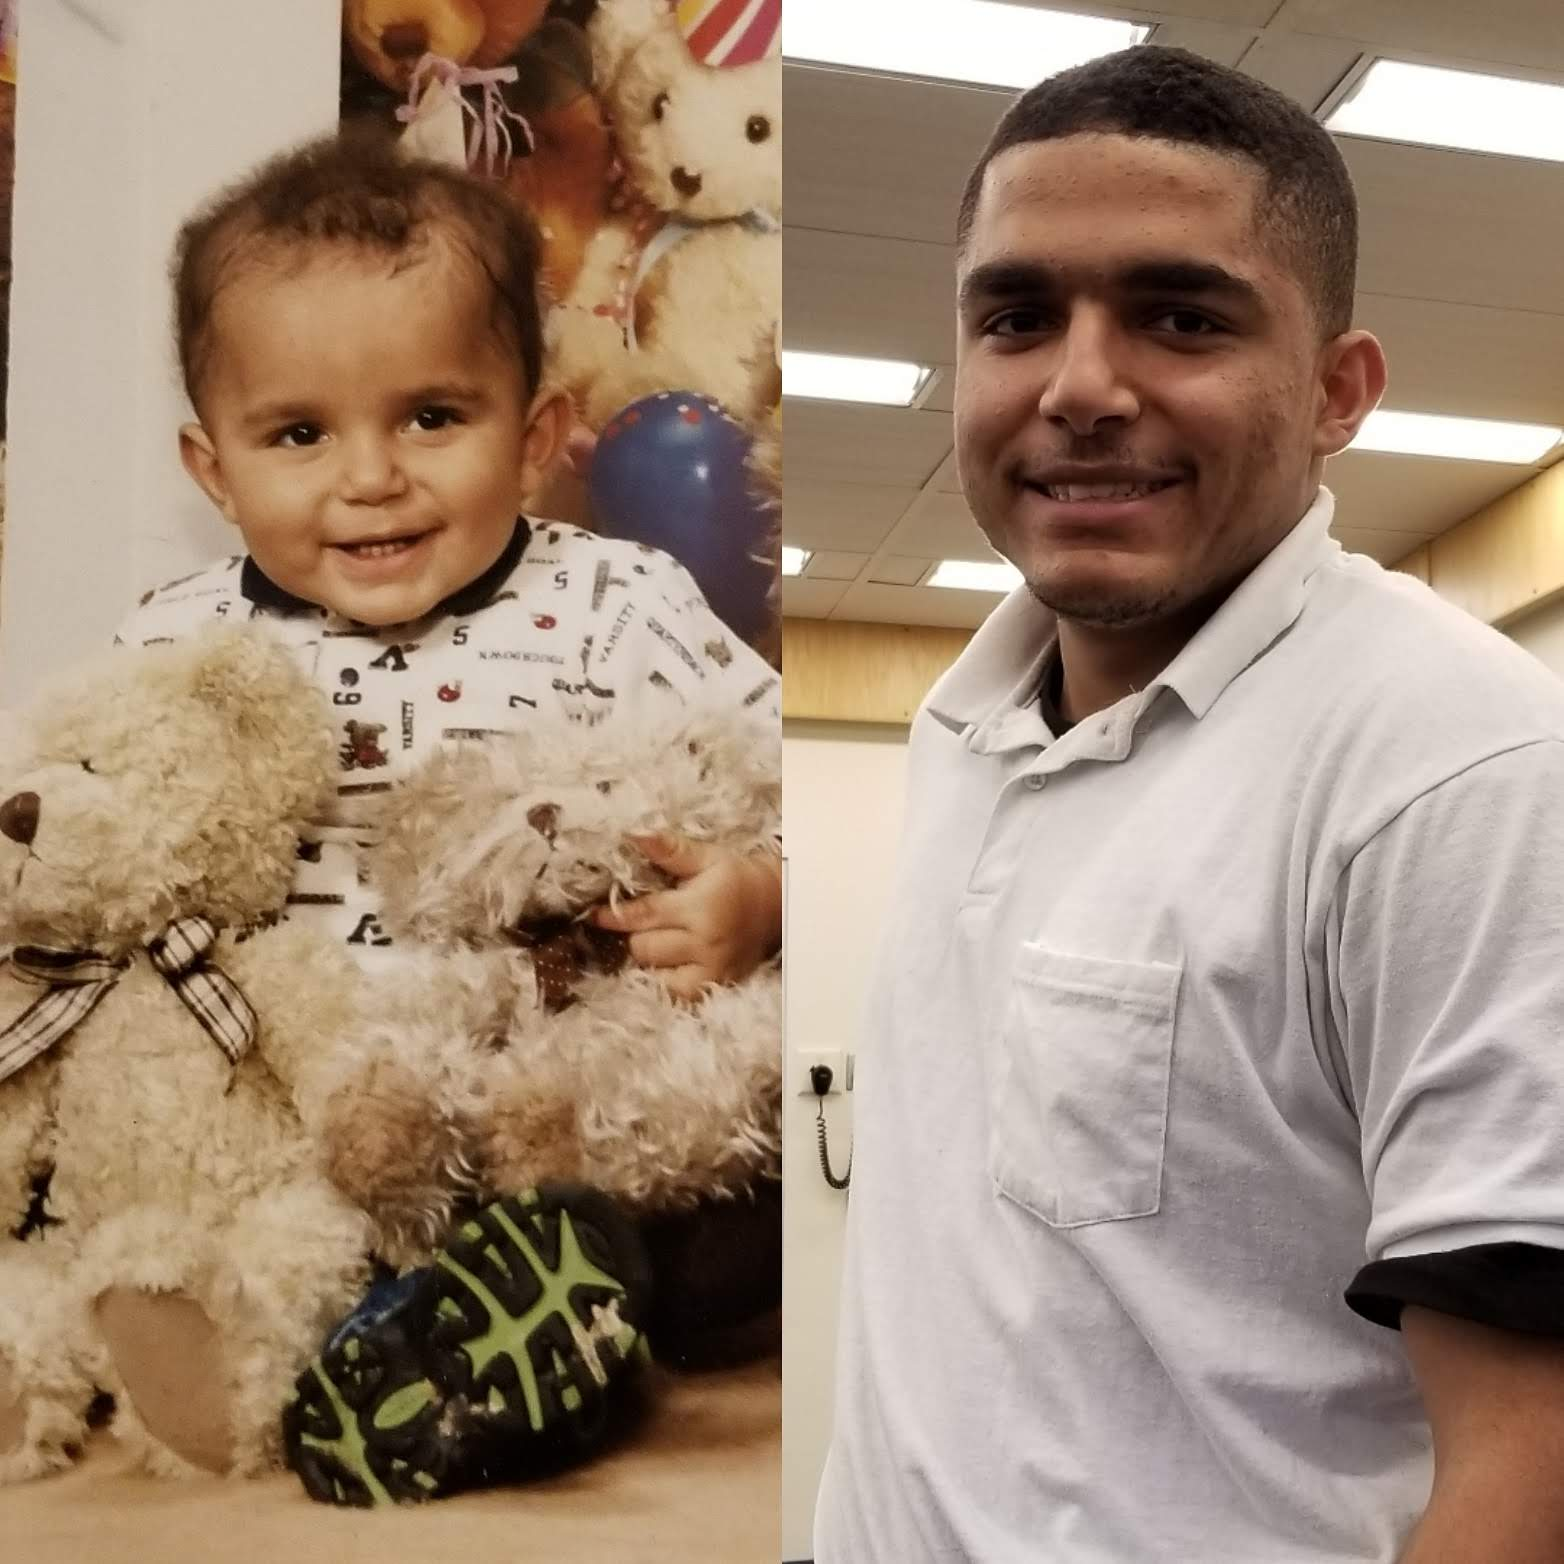 71-justin-baby-to-grown-up.jpg